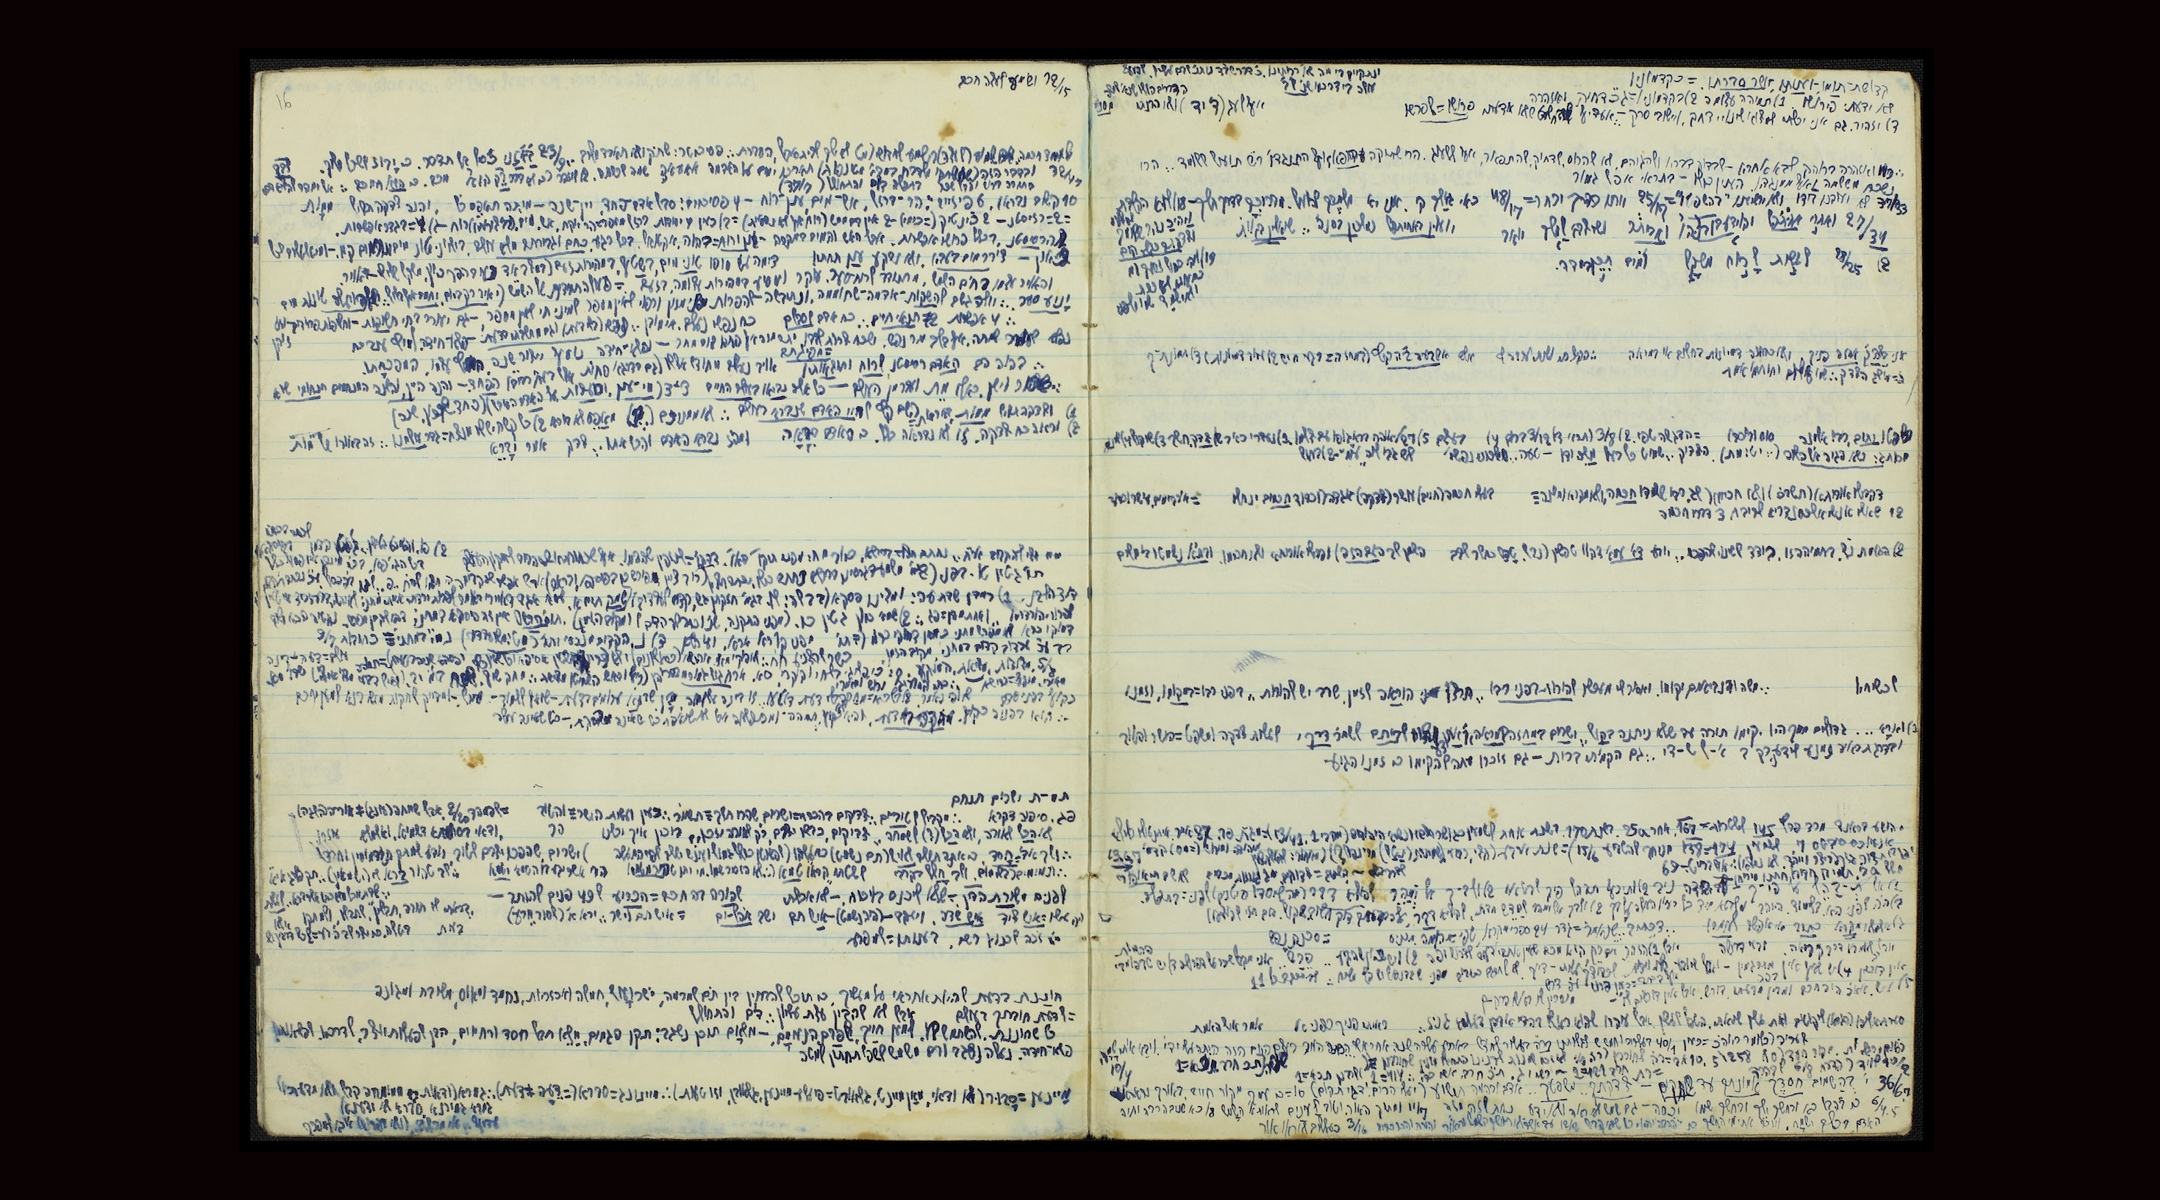 Israel's National Library to display notebooks of mysterious scholar who taught Elie Wiesel, Emmanuel Levinas